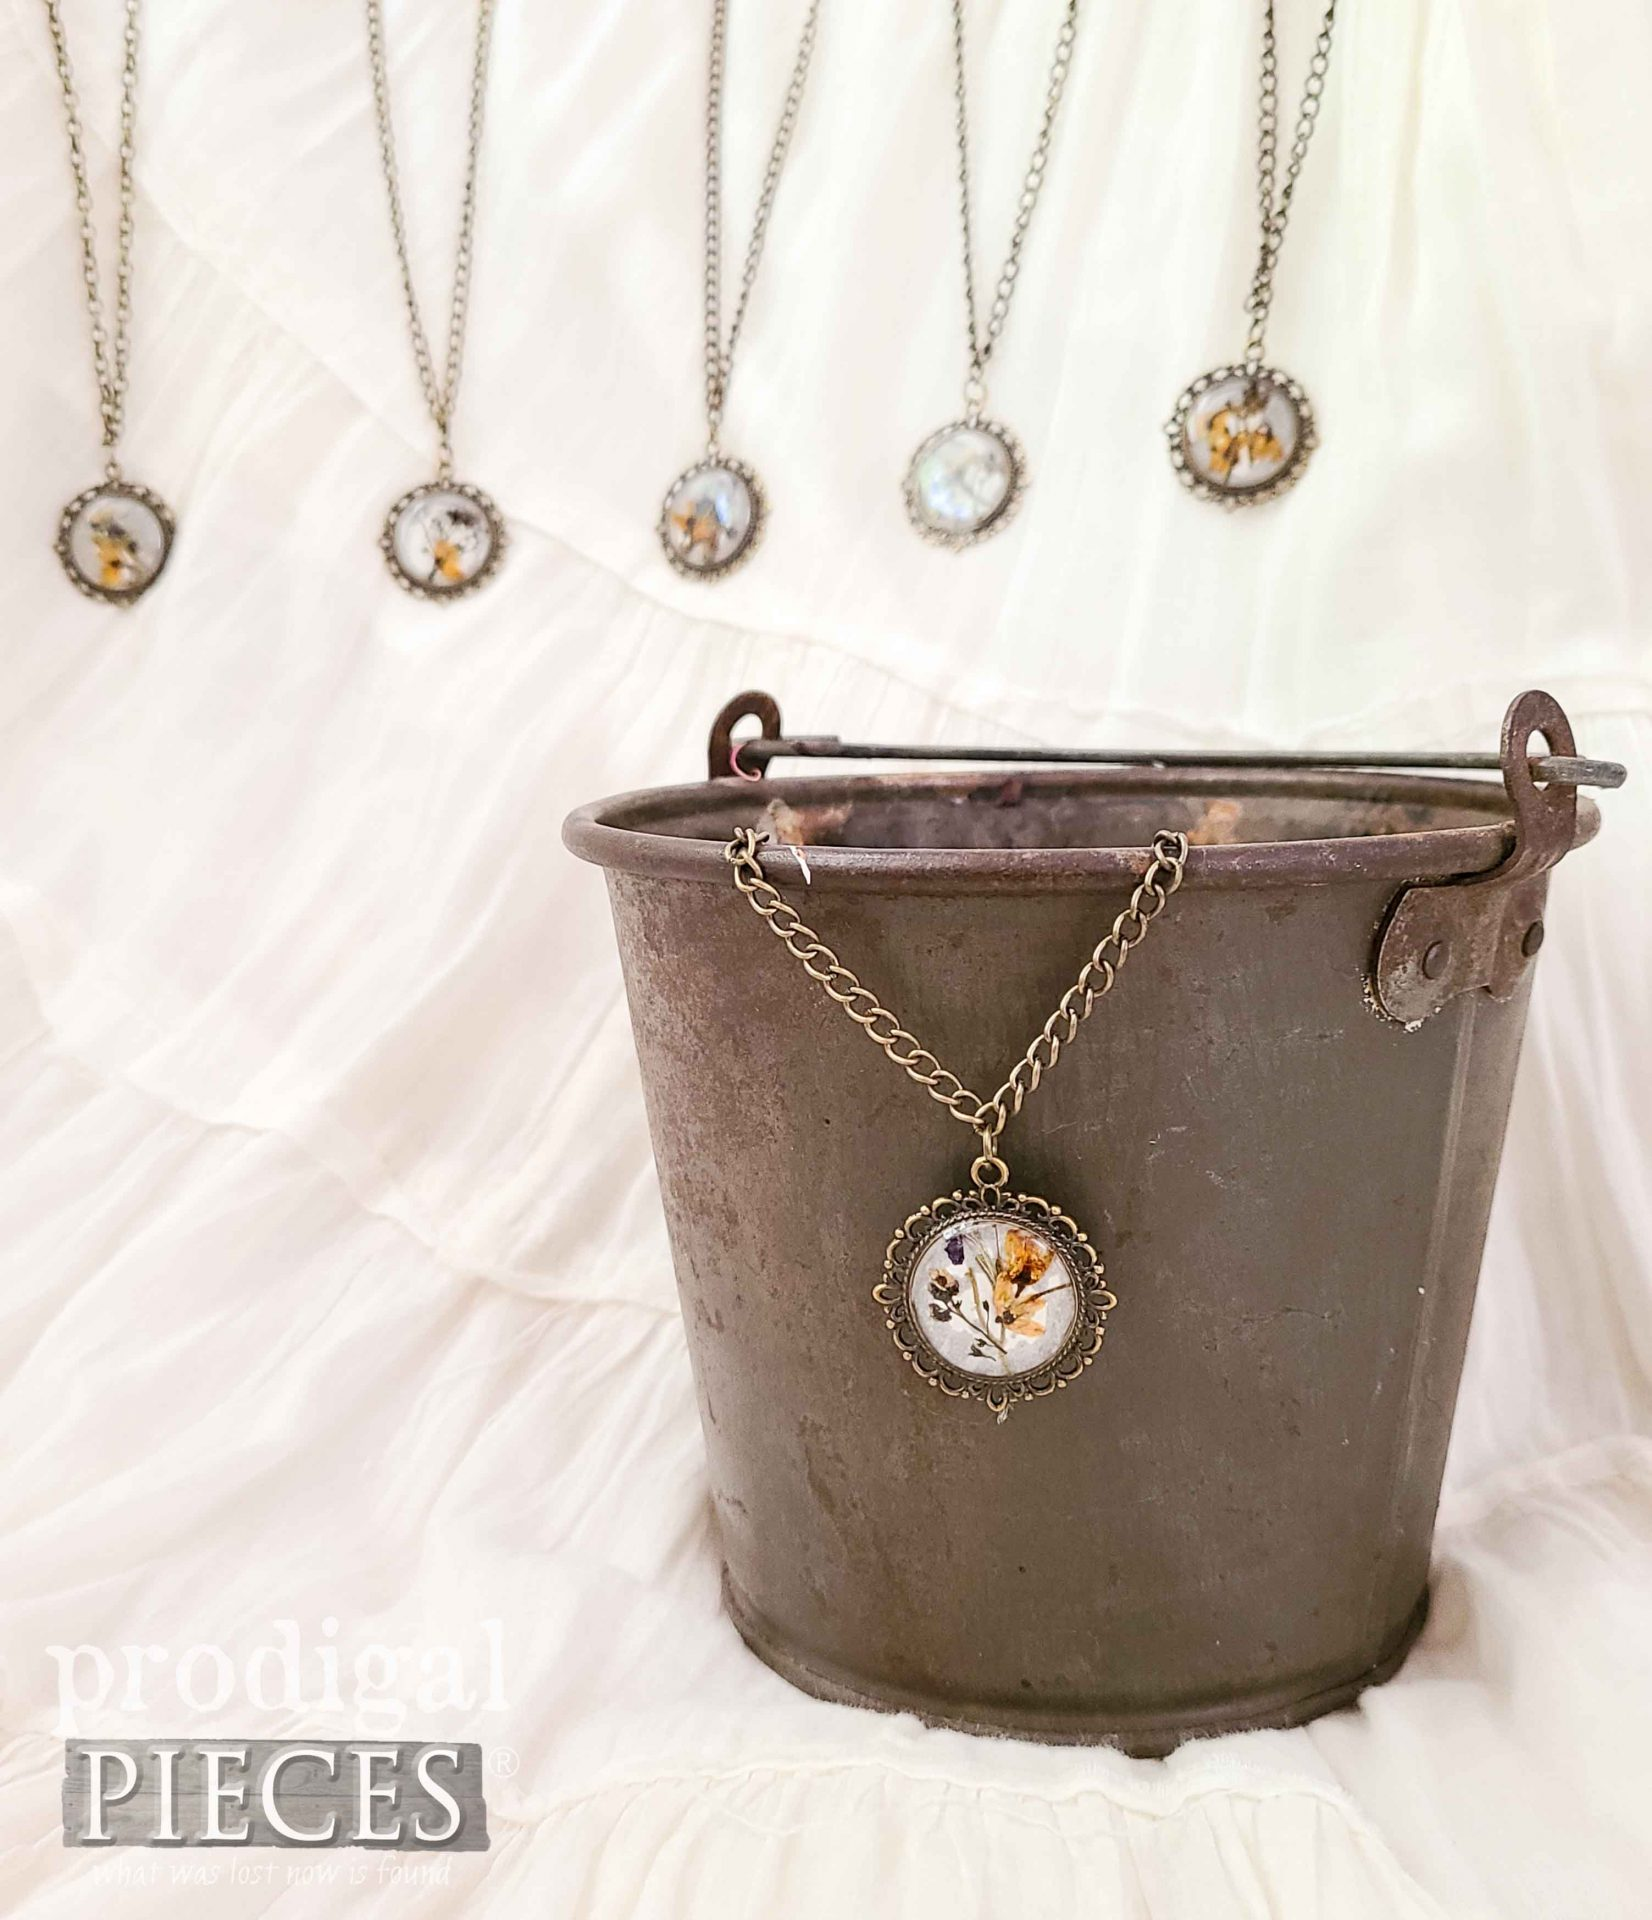 Handmade DIY Resin Necklace Pendant with Dried Flowers by Larissa of Prodigal Pieces   prodigalpieces.com #prodigalpieces #diy #handmade #flowers #jewelry #necklace #giftideas